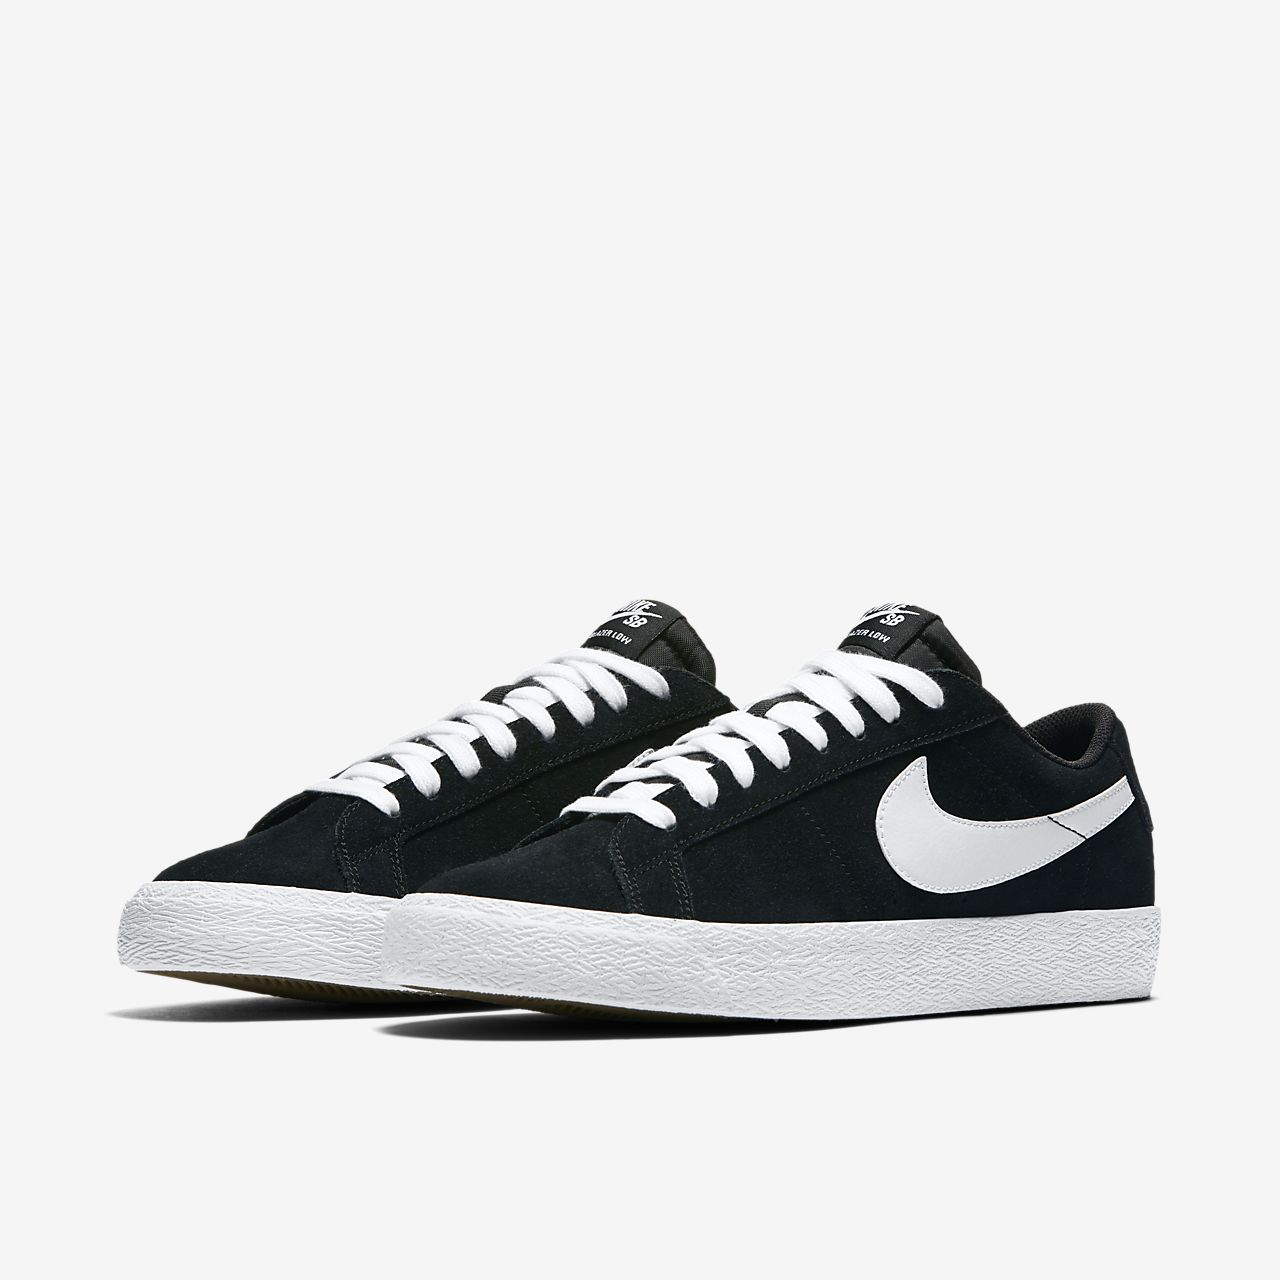 Nike Blazer : Up to 60% off Buy Nike Shoes at